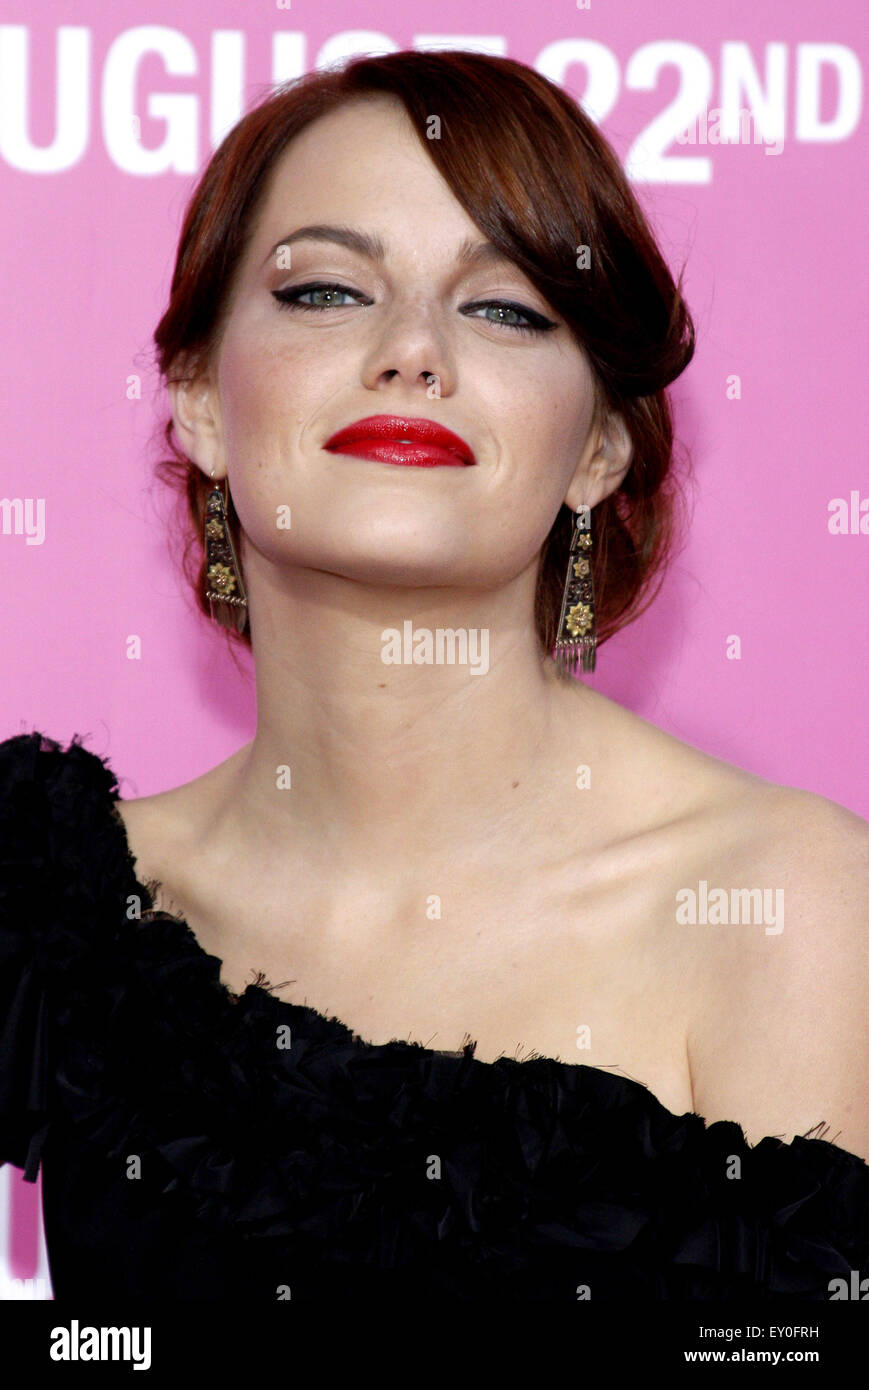 Emma Stone at the Los Angeles premiere of 'House Bunny' held at the Mann Village Theatre in Westwood on - Stock Image